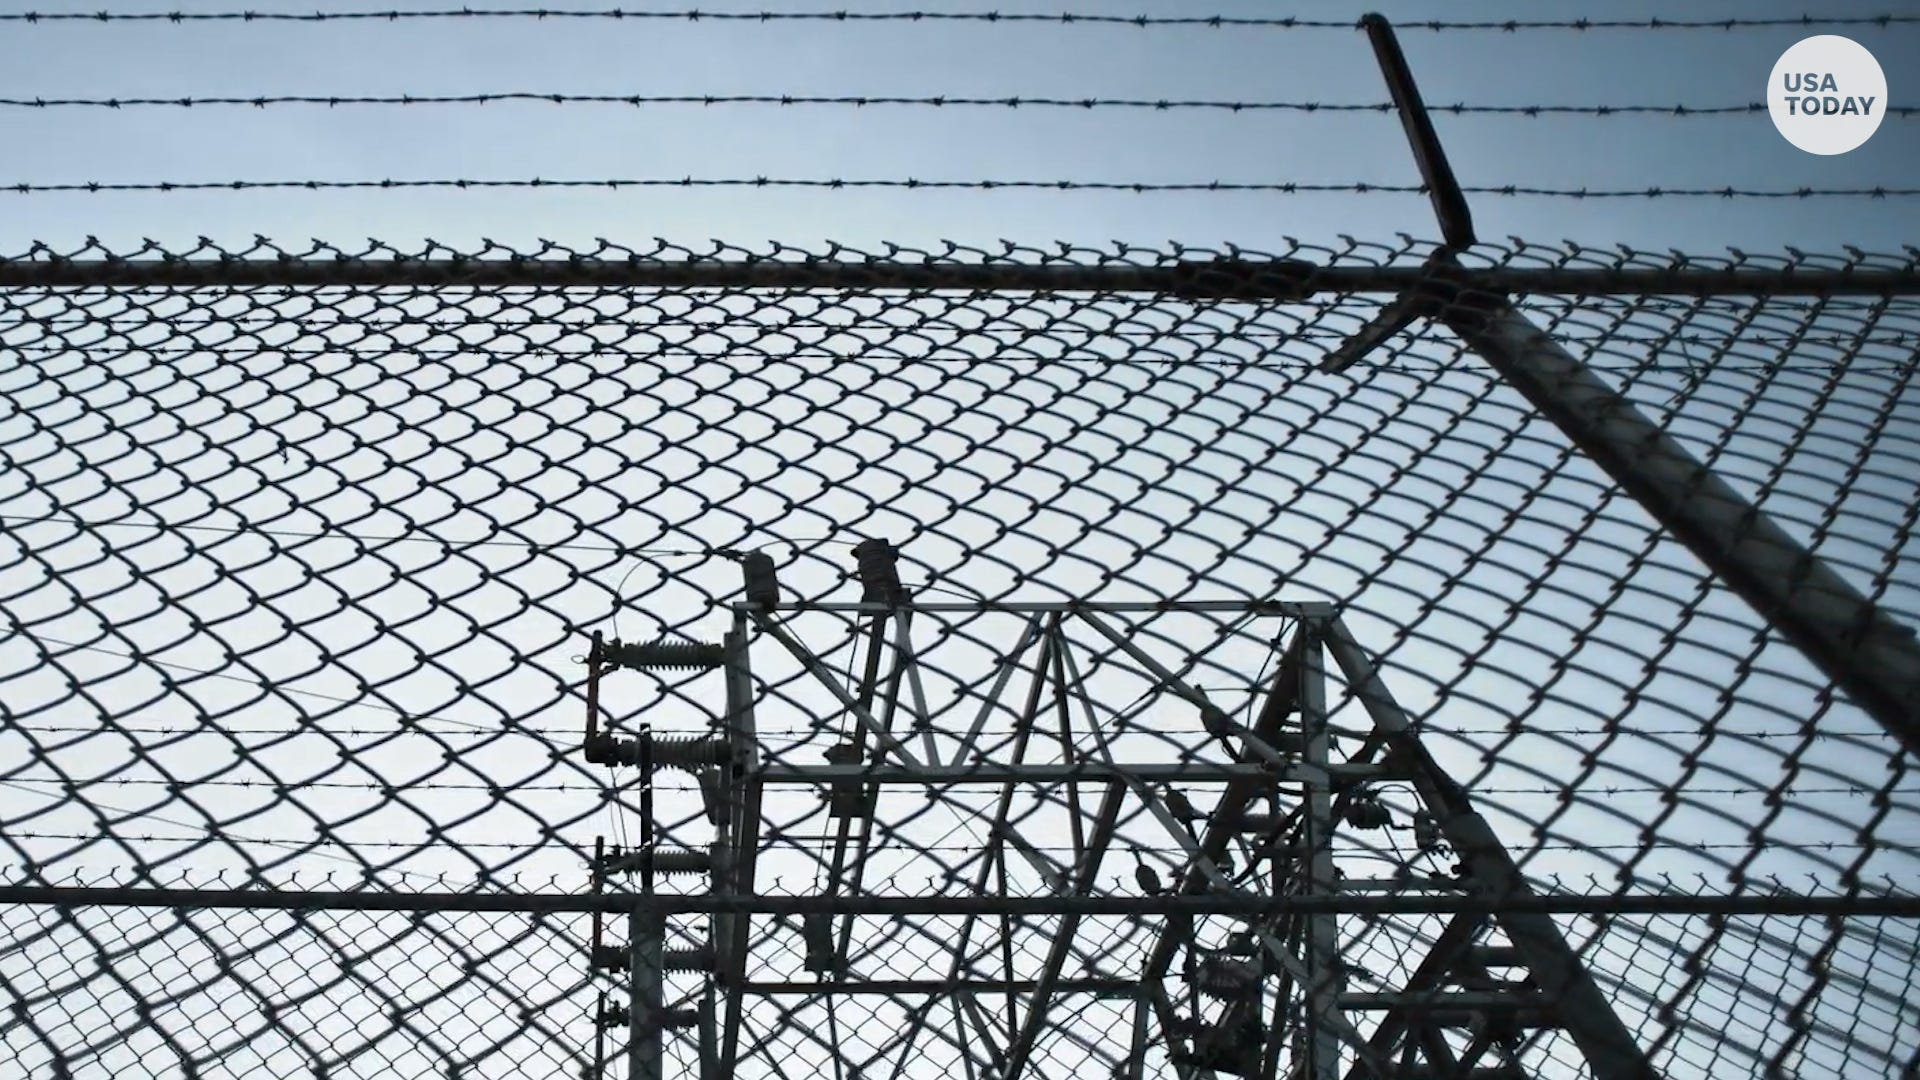 Federal government releases 2,200 prisoners as First Step Act kicks in